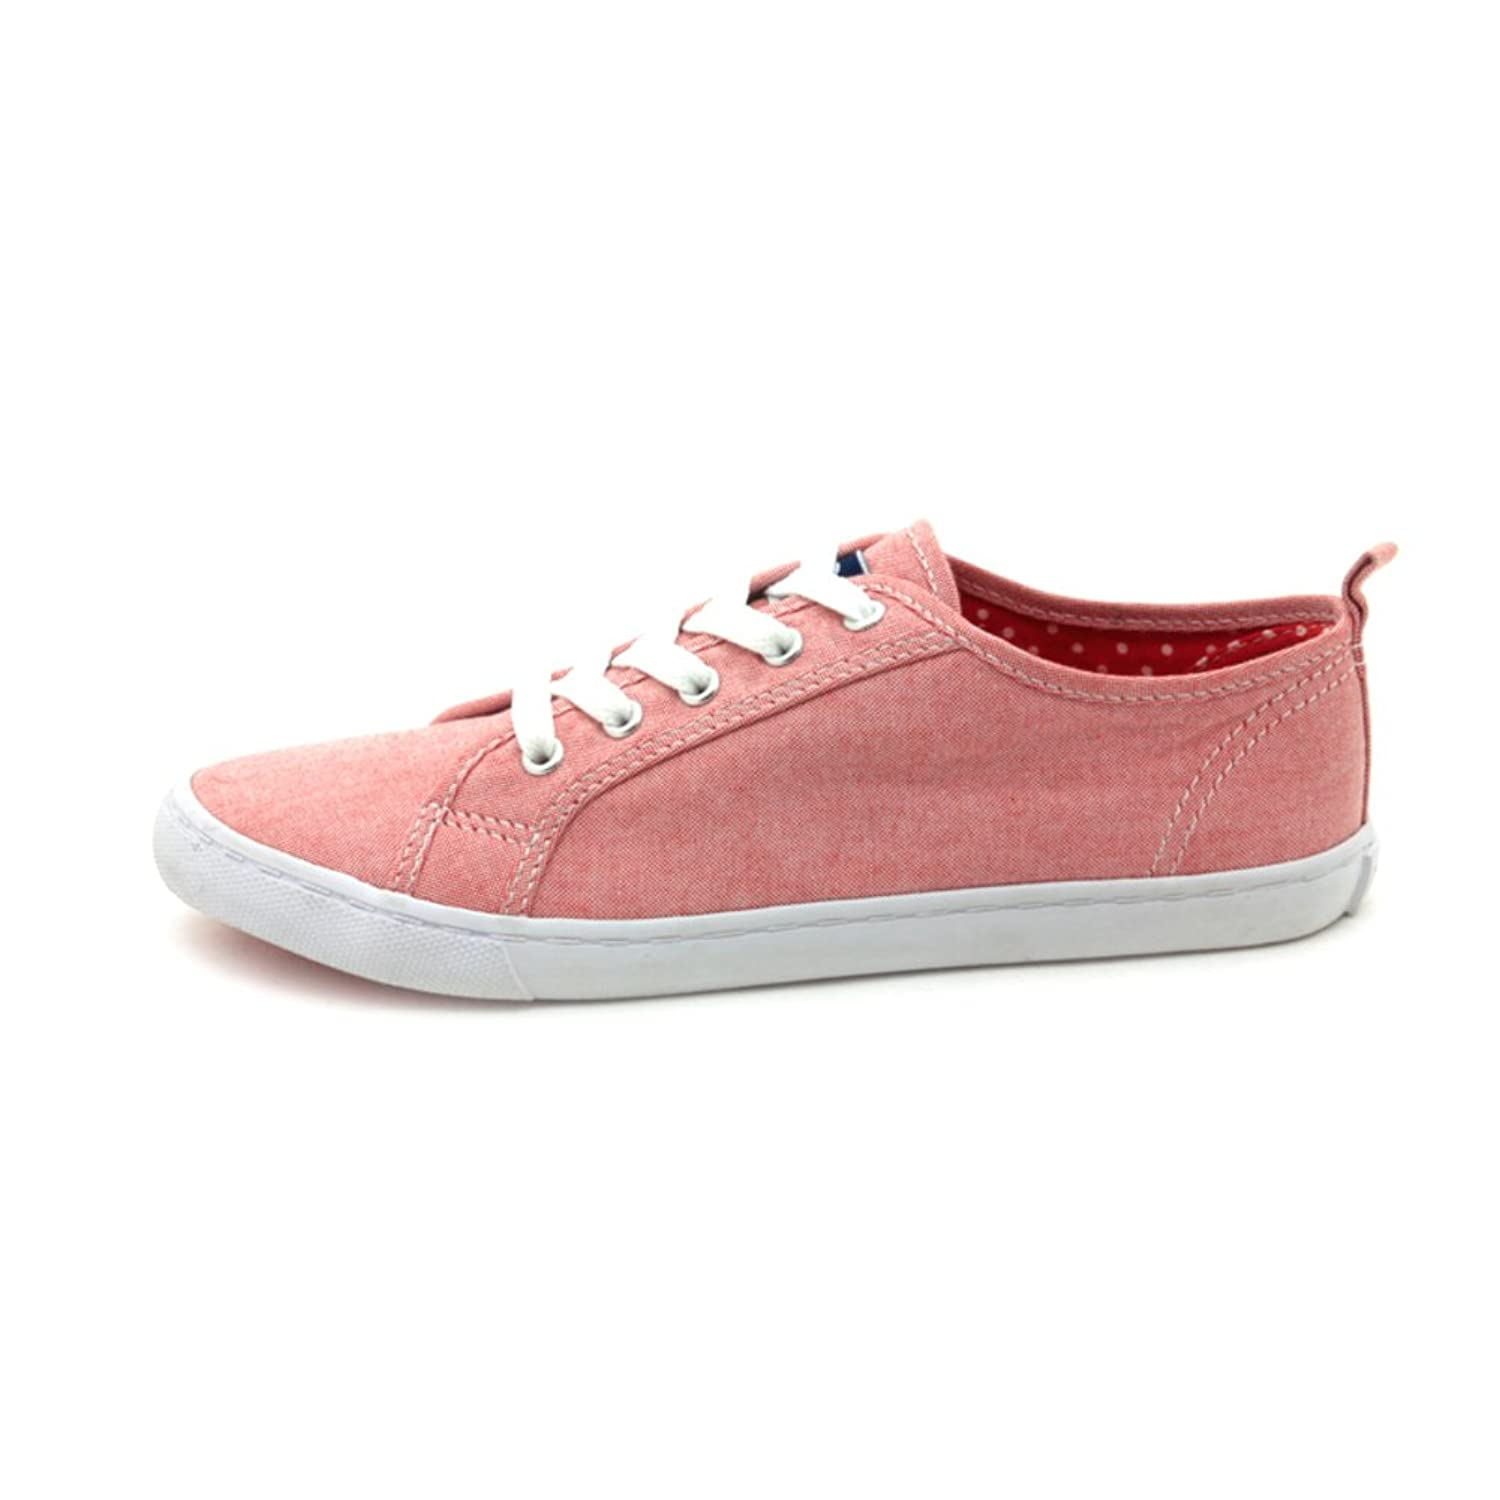 Fall low canvas shoes/Asakuchi strap casual shoes/ women's solid color flat-bottom shoe